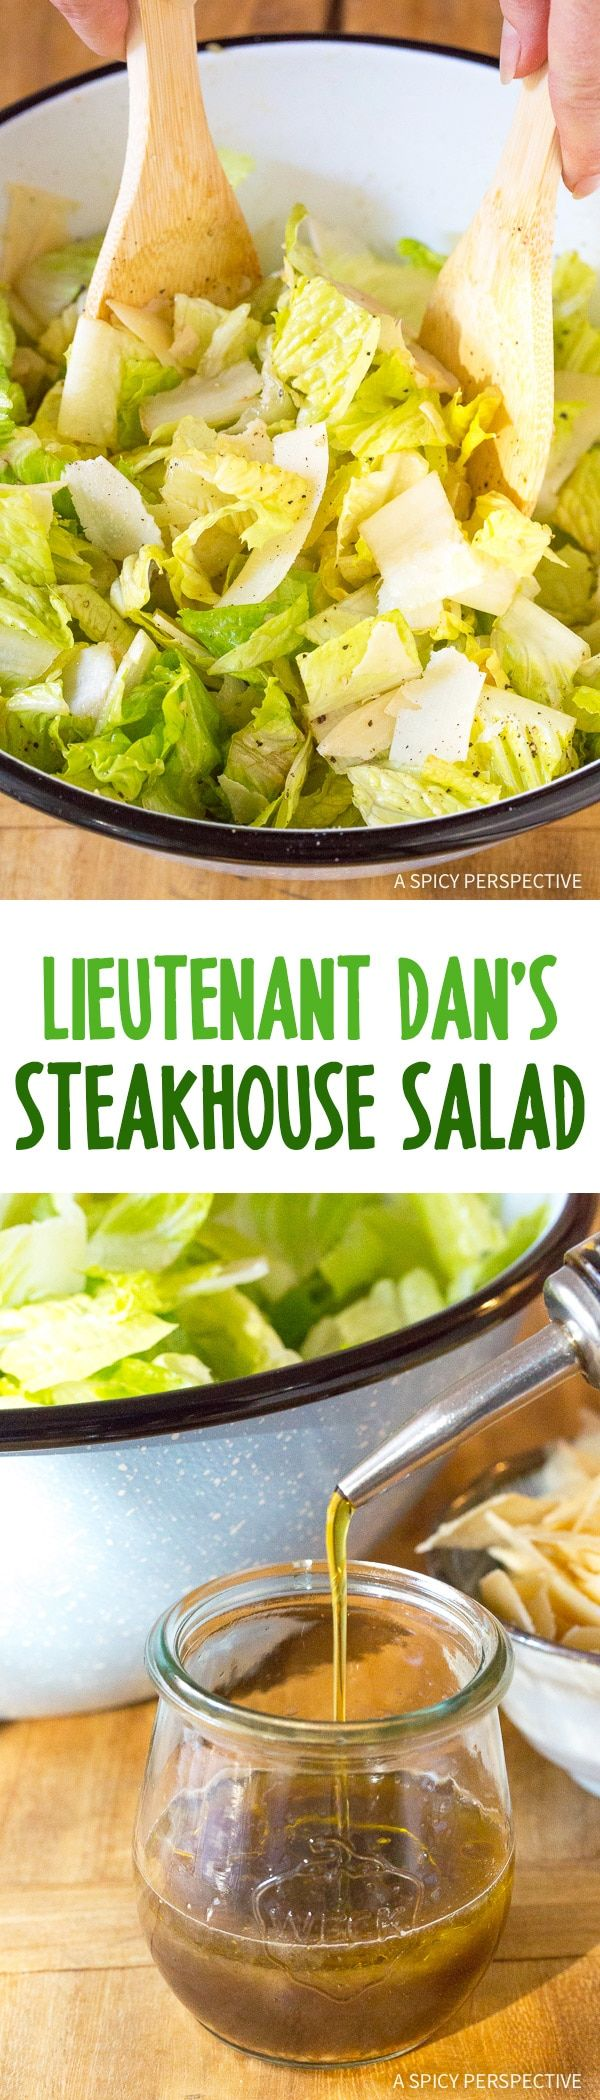 Lieutenant Dan's Steakhouse Salad - A perky 6-ingredient salad recipe that tastes like the table-side salads prepared at a fancy steak house! via @spicyperspectiv